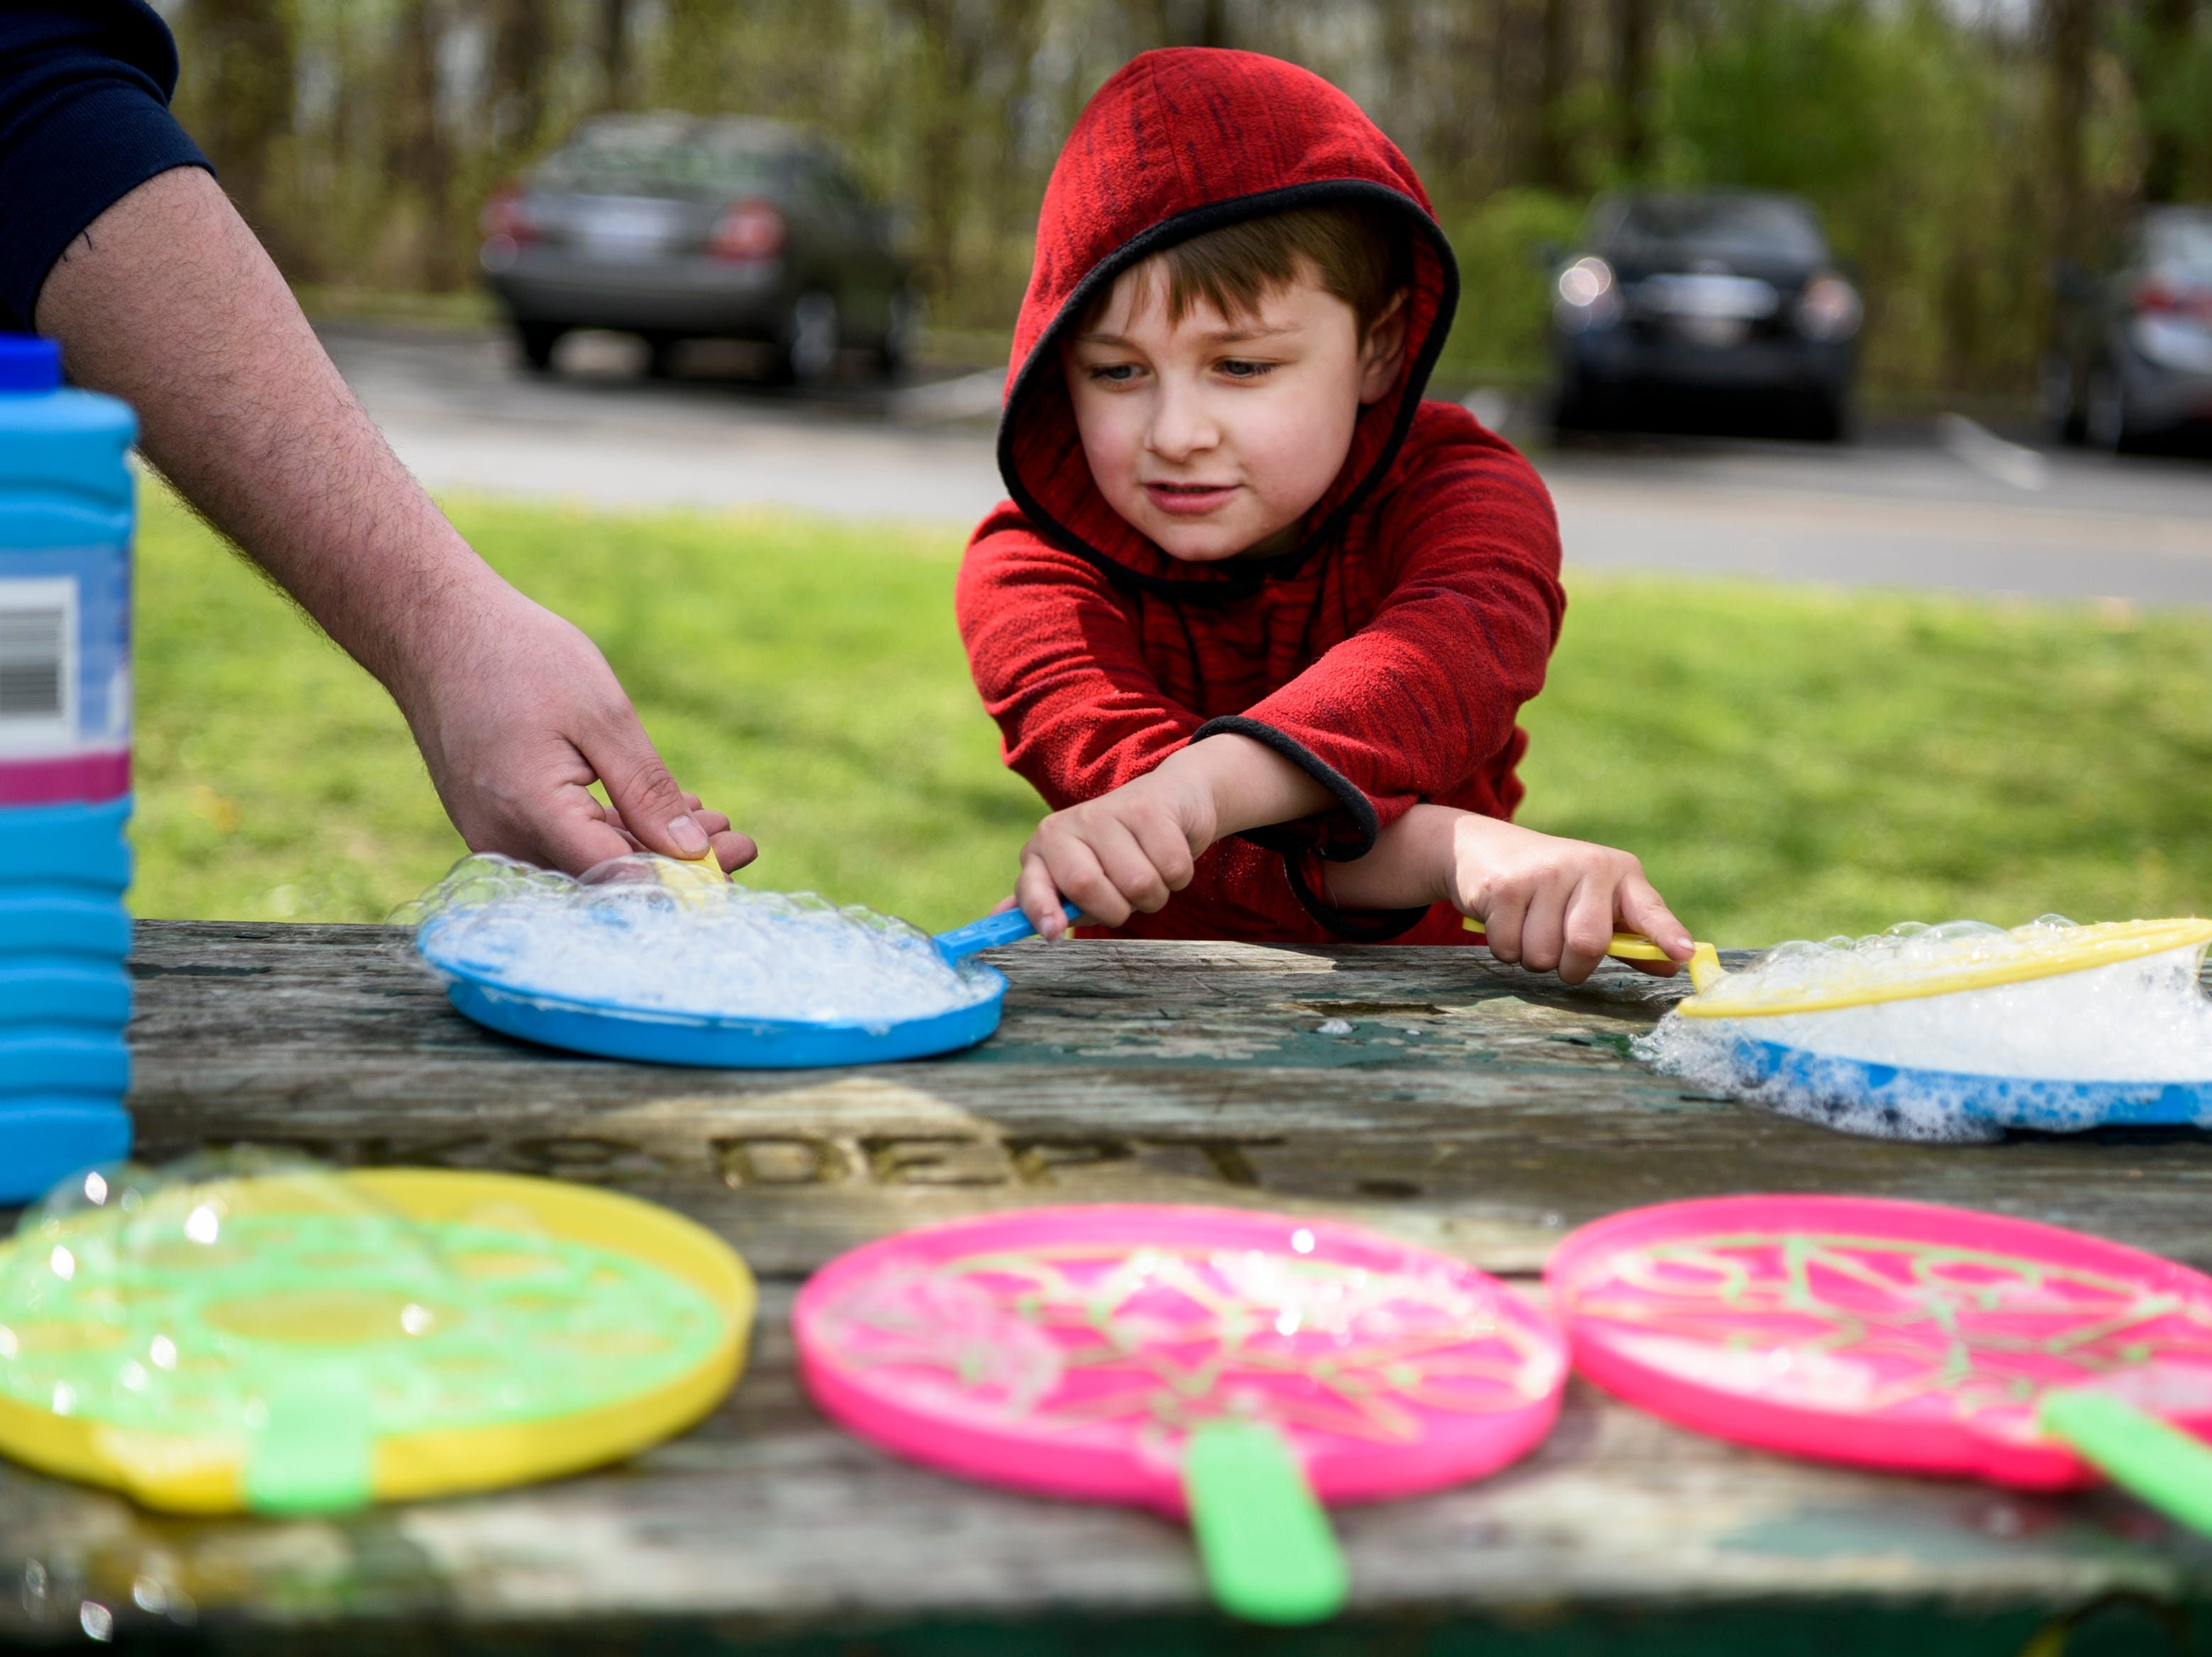 Jaxton Mason, 5, center, and his father Zachary Mason, left, play with bubbles during the local Community Action Program of Evansville & Vanderburgh County's (CAPE) annual end of the year Family Fun Day at Wesselman Park in Evansville, Ind., Friday, April 12, 2019.